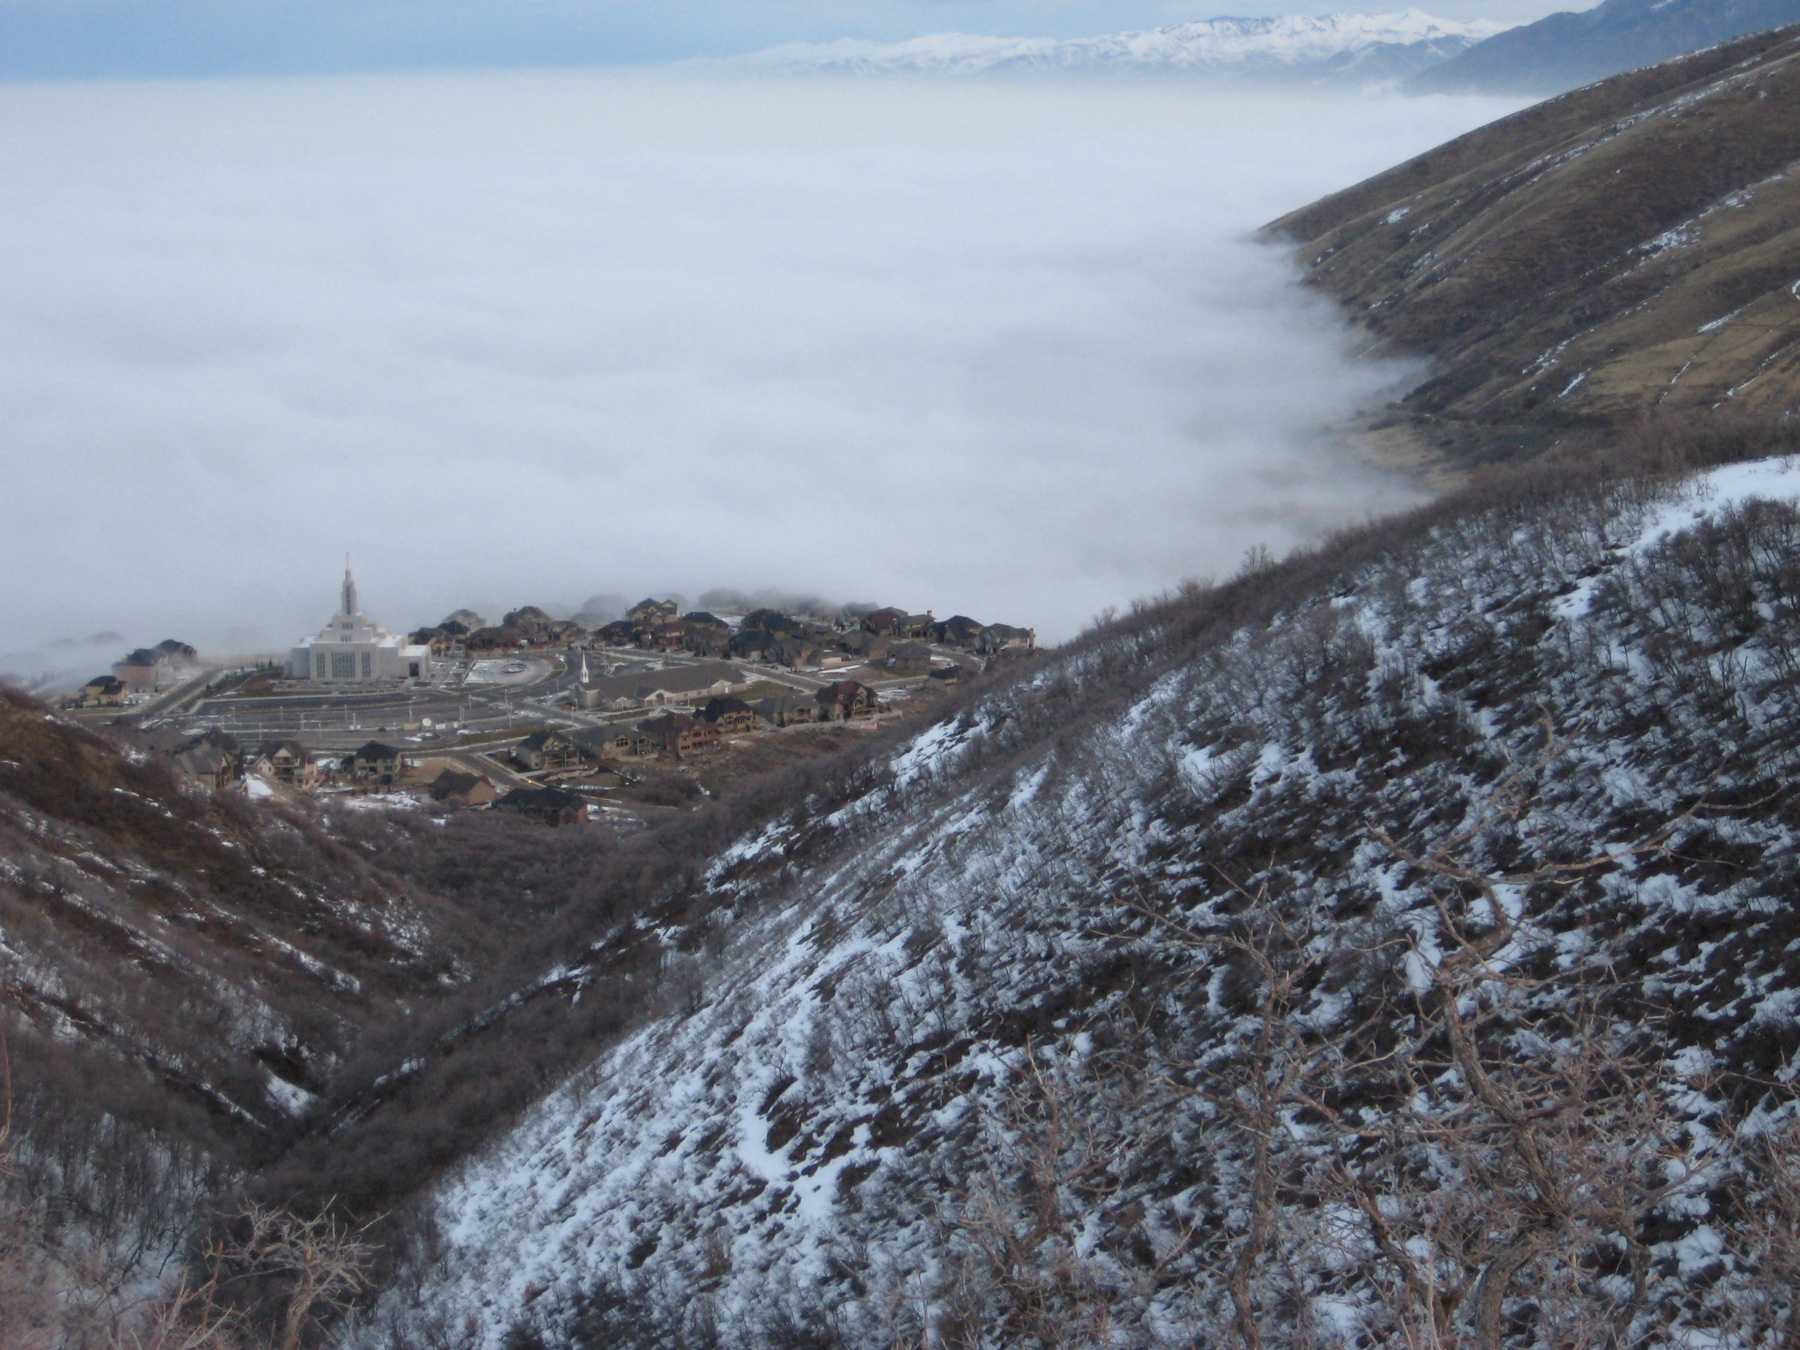 Polluted air in the Salt Lake Valley often is capped by fog, as is the case in this image of a temperature inversion holding cold, smoggy air close to the ground, just below the level of the Mormon church temple in Draper, Utah. University of Utah meteorologists are wrapping up two months of field measurements as part of a three-year, National Science Foundation-funded study of inversions and the weather conditions that promote them.